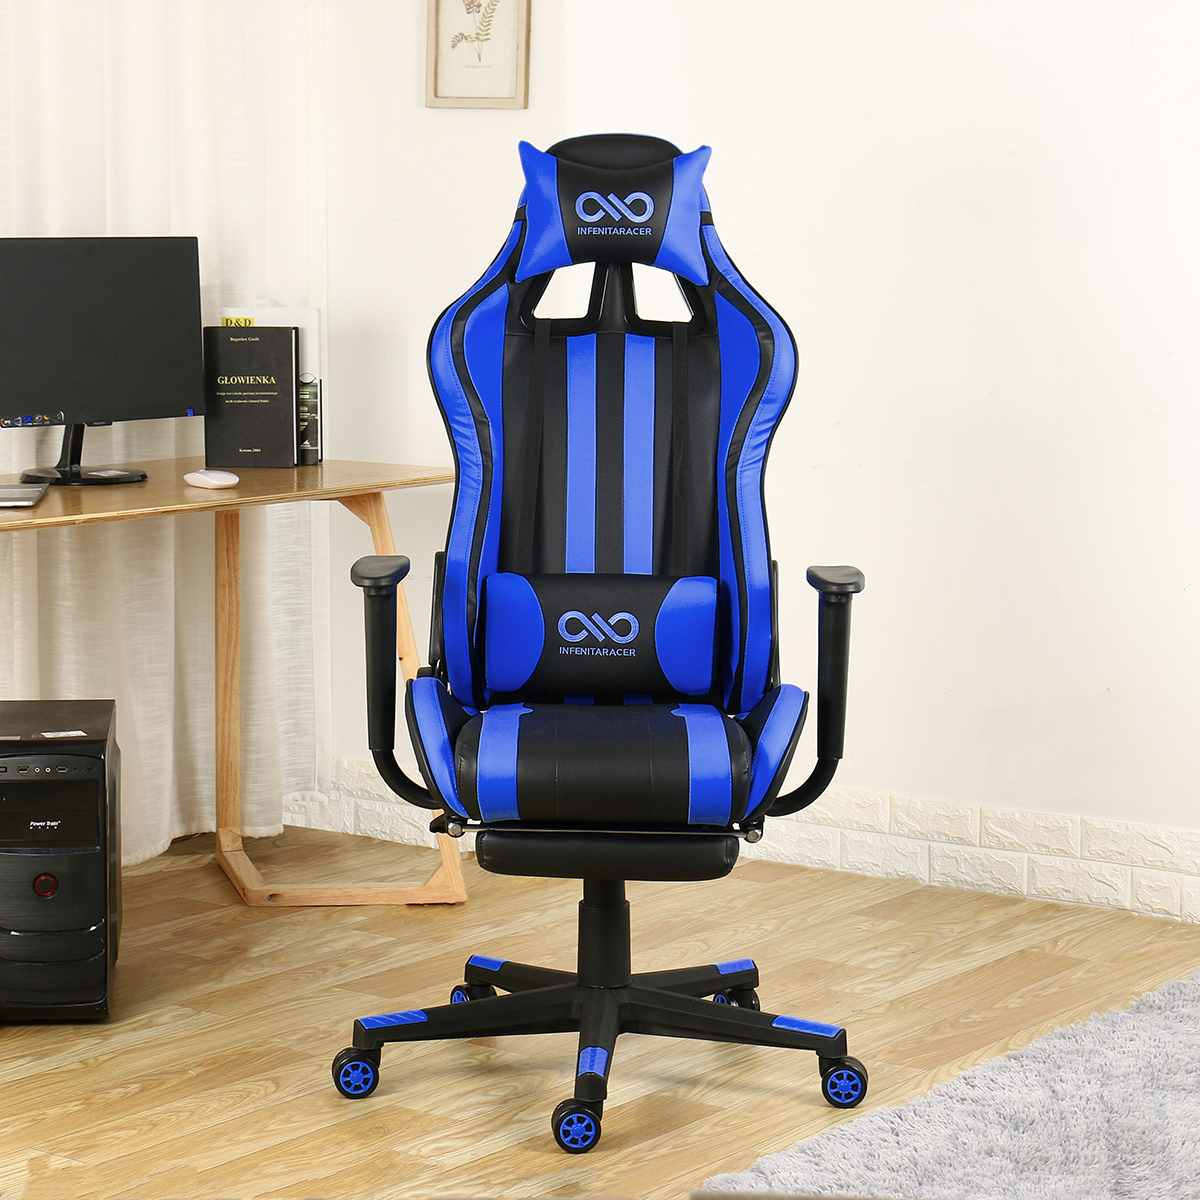 H0492029cbd4a44e8931622cf60d8905f1 - Office Gaming Chair PVC Household Armchair Lift and Swivel Function Ergonomic Office Computer Chair Wcg Gamer Chairs